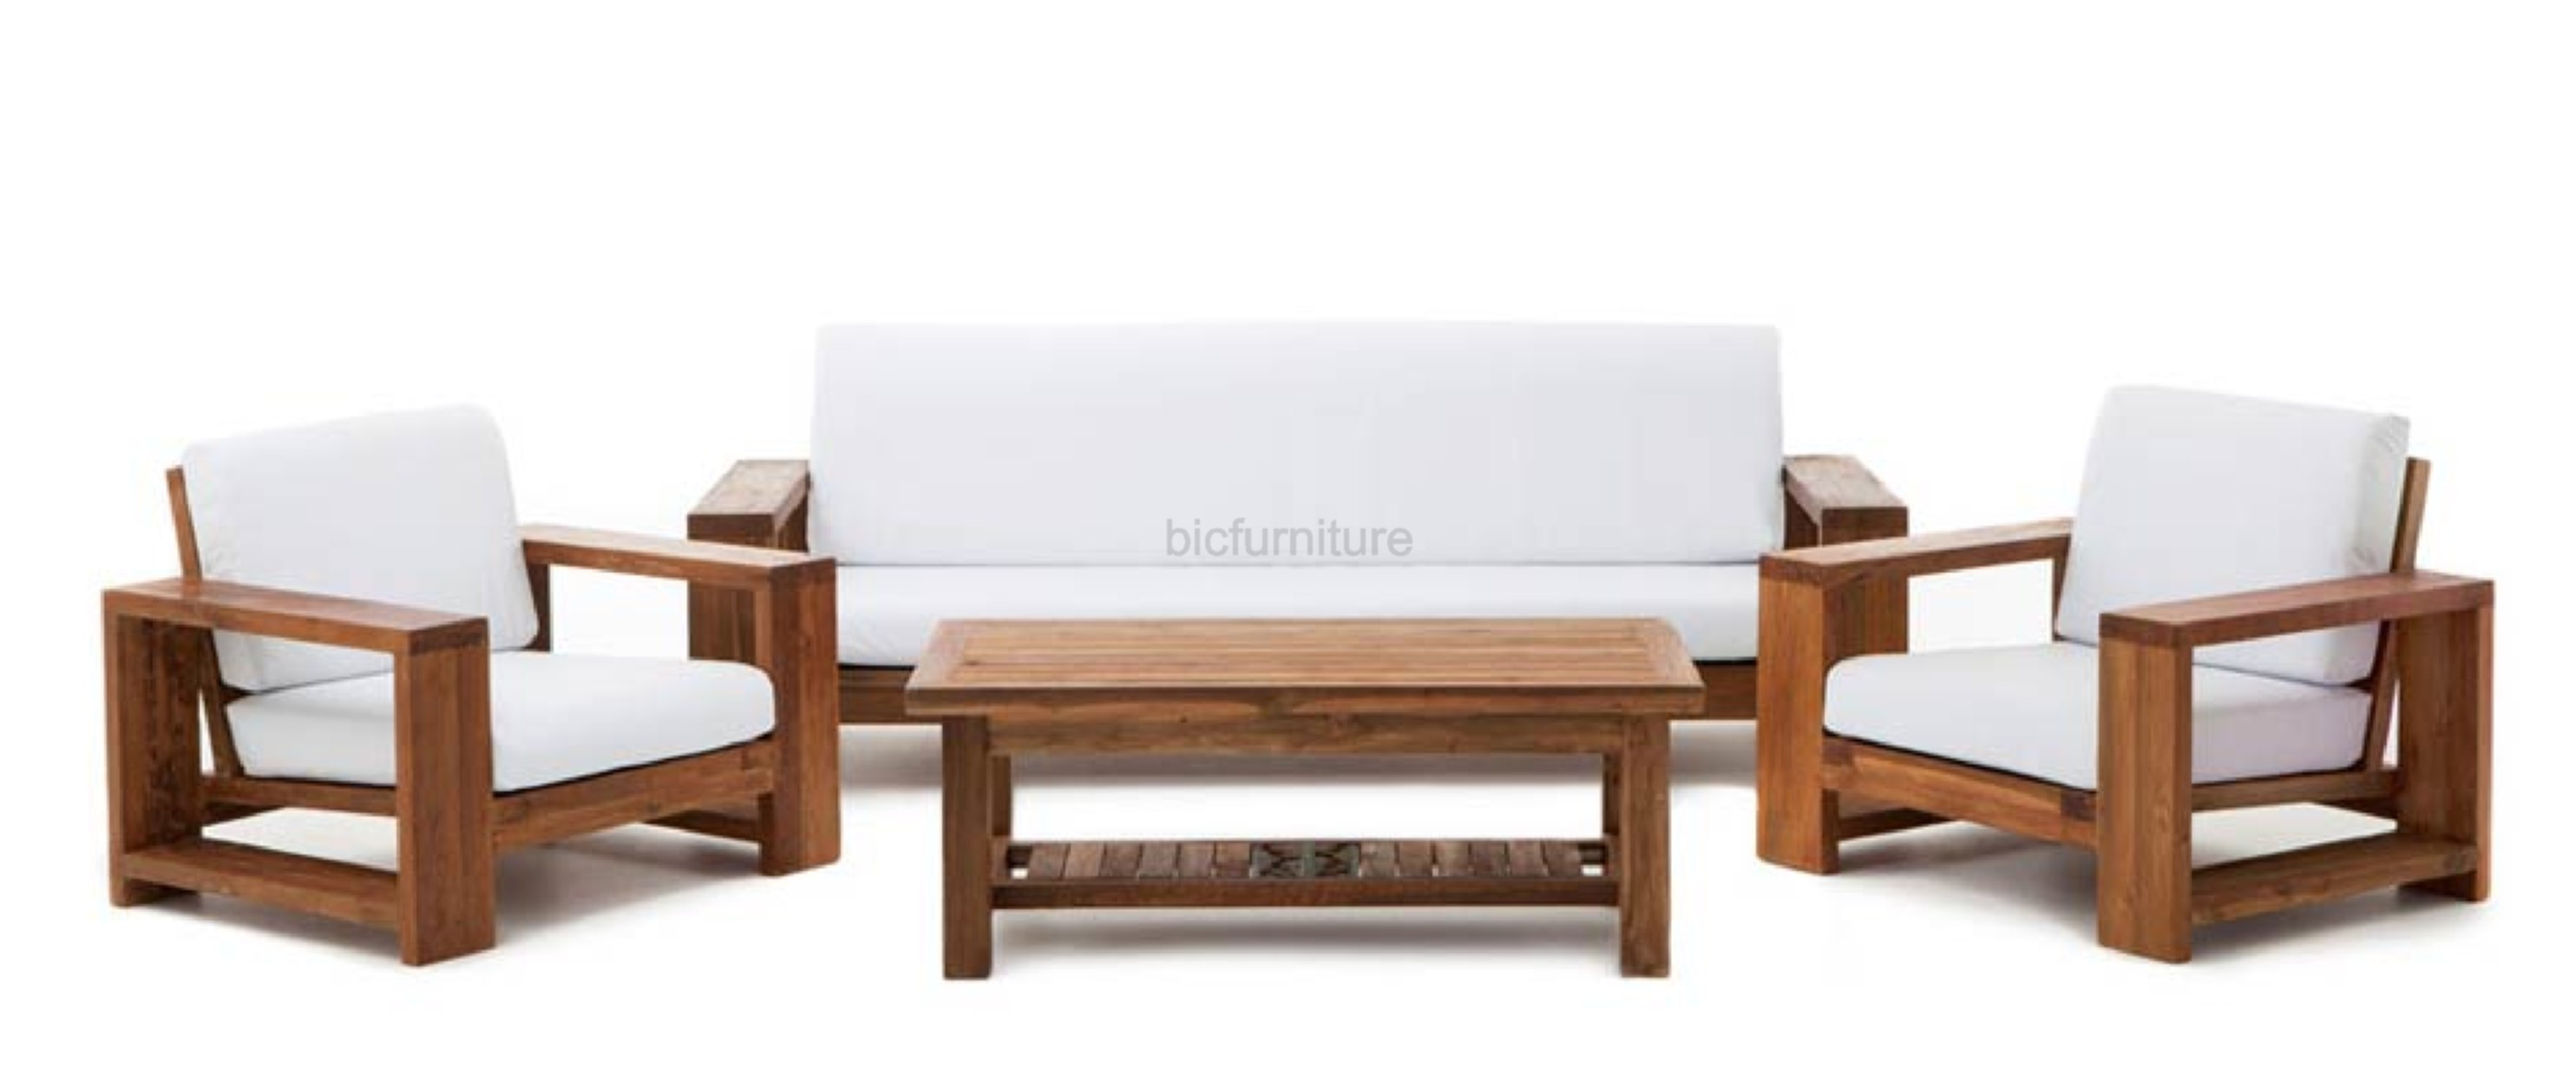 Simple 90 Bedroom Set Furniture Price In India Design Decoration Of Buildmantra Online At Best